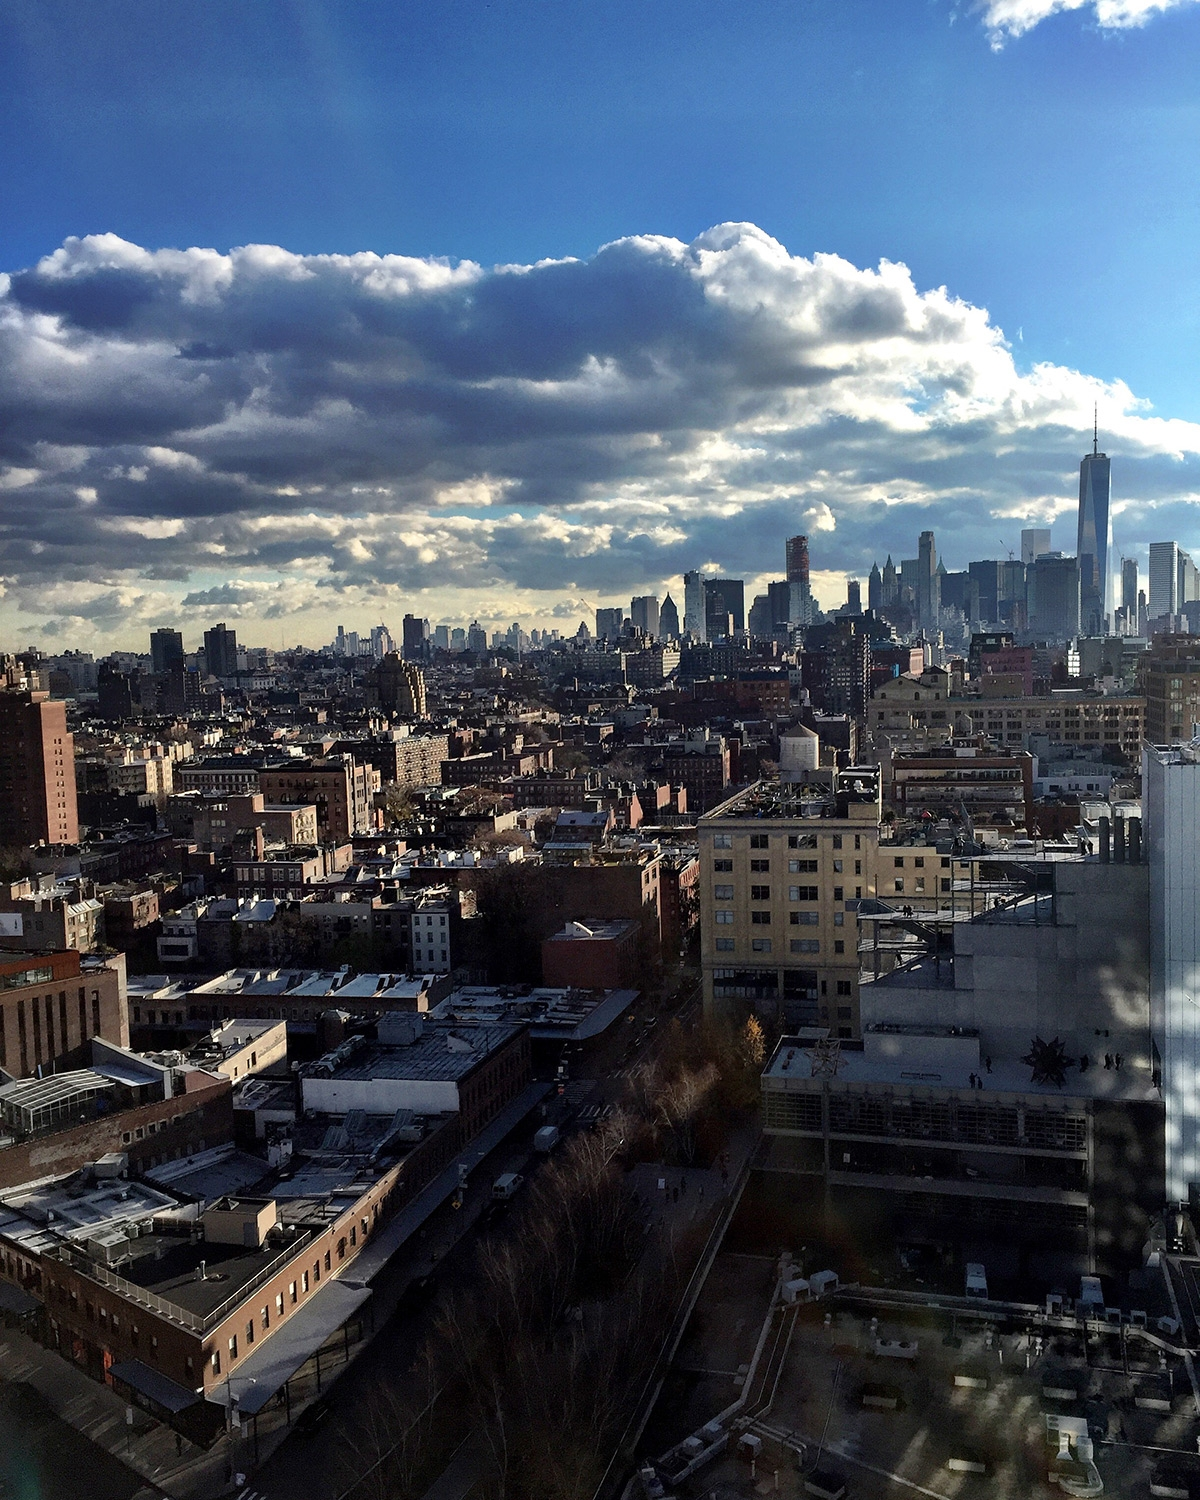 New York buildings and skyscrapers stretch as far as the eye-can-see